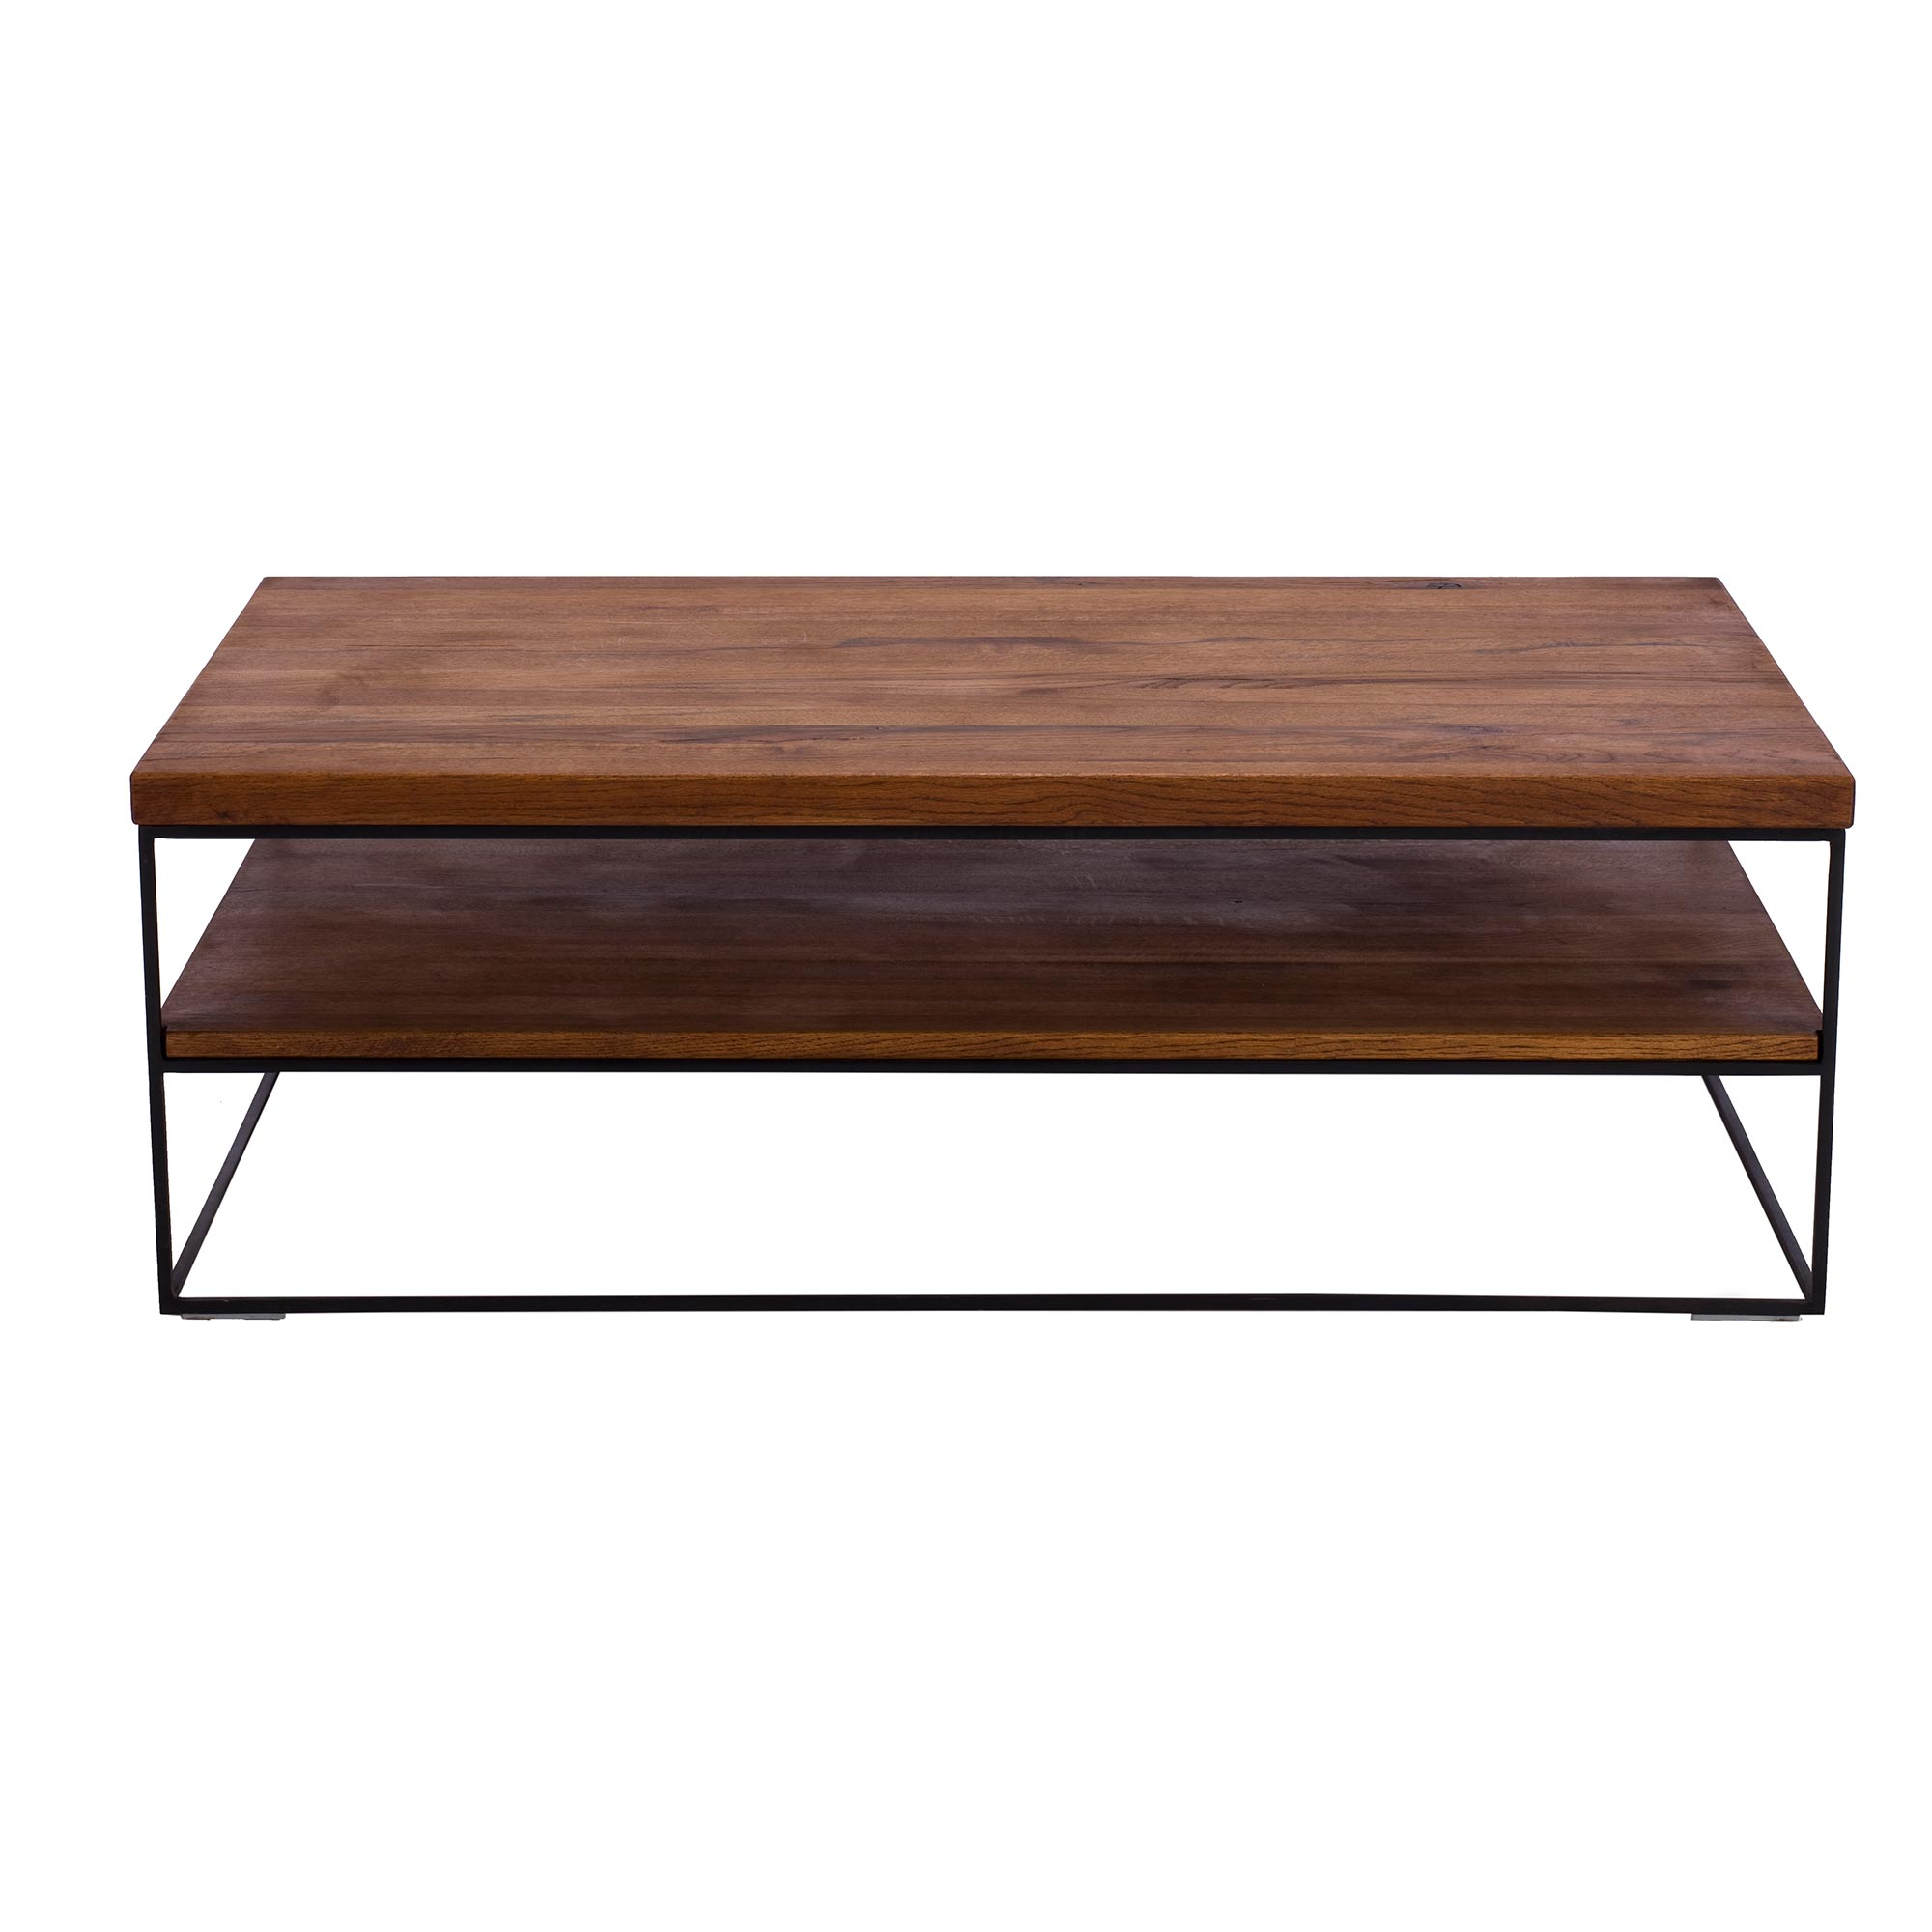 CORMAR OILED OAK COFFEE TABLE - L120cm x D70cm x H40cm FRONT VIEW